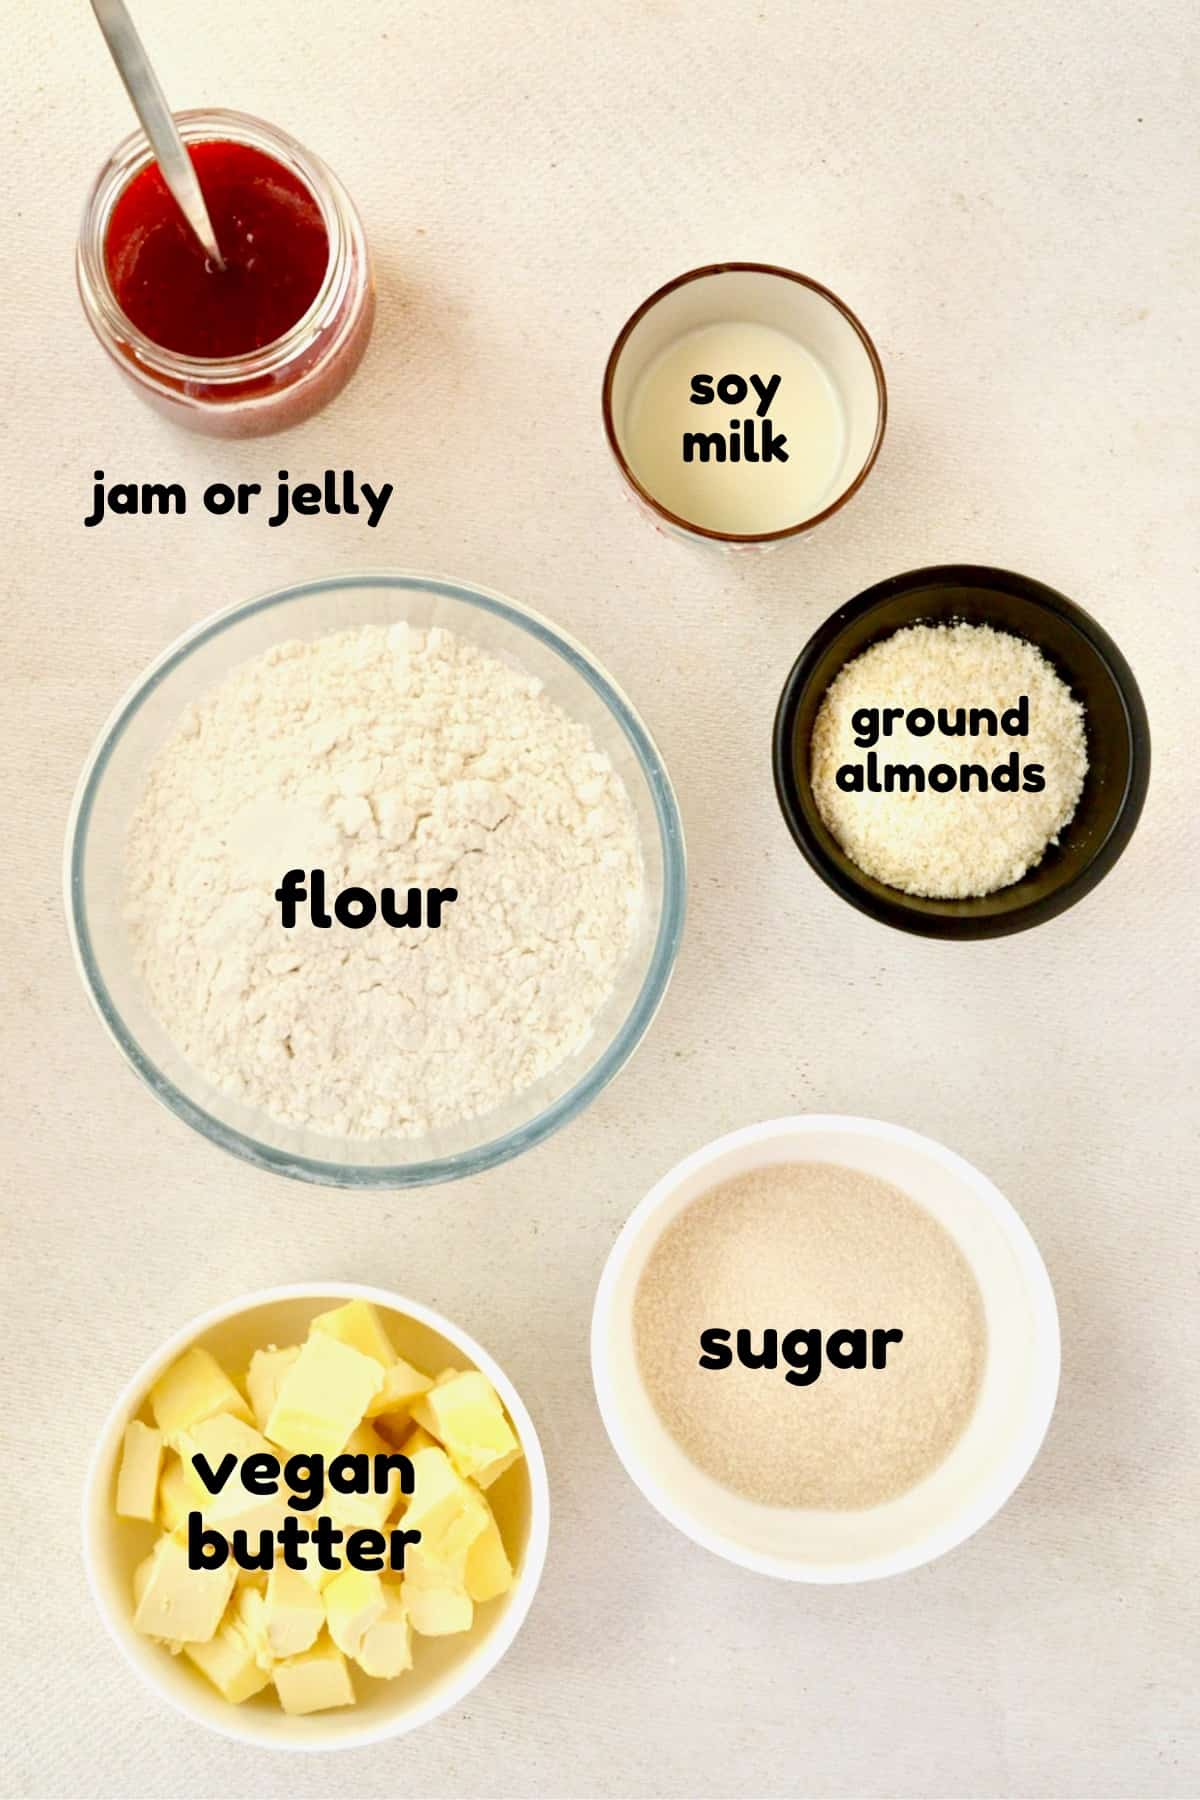 The ingredients for the cookies: Flour, sugar, vegan butter, ground almonds, soy milk, jam. Not in the picture: Icing sugar for dusting.